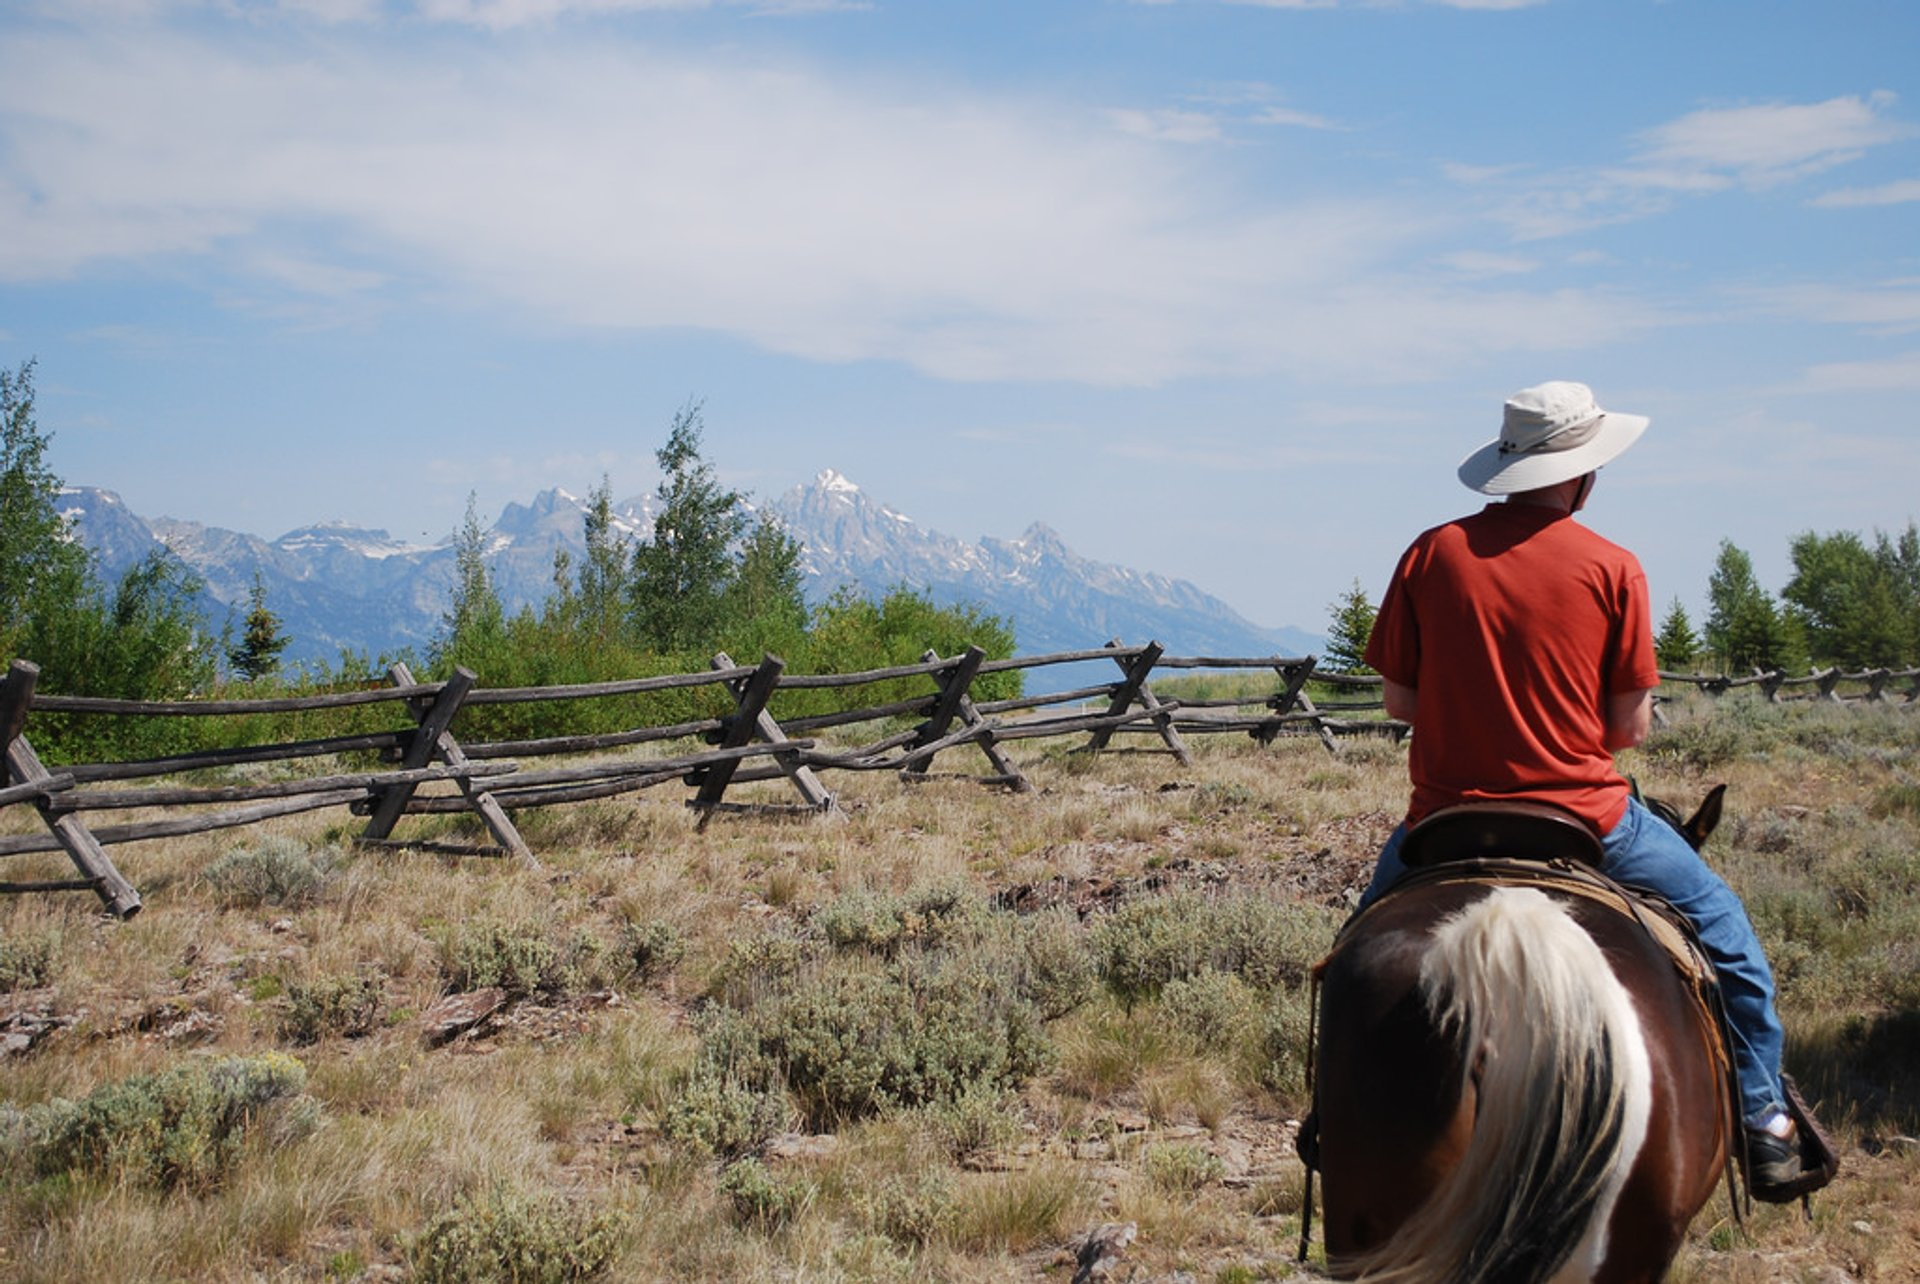 Horseback Riding in Grand Teton, Yellowstone National Park, Wyoming, USA 2020